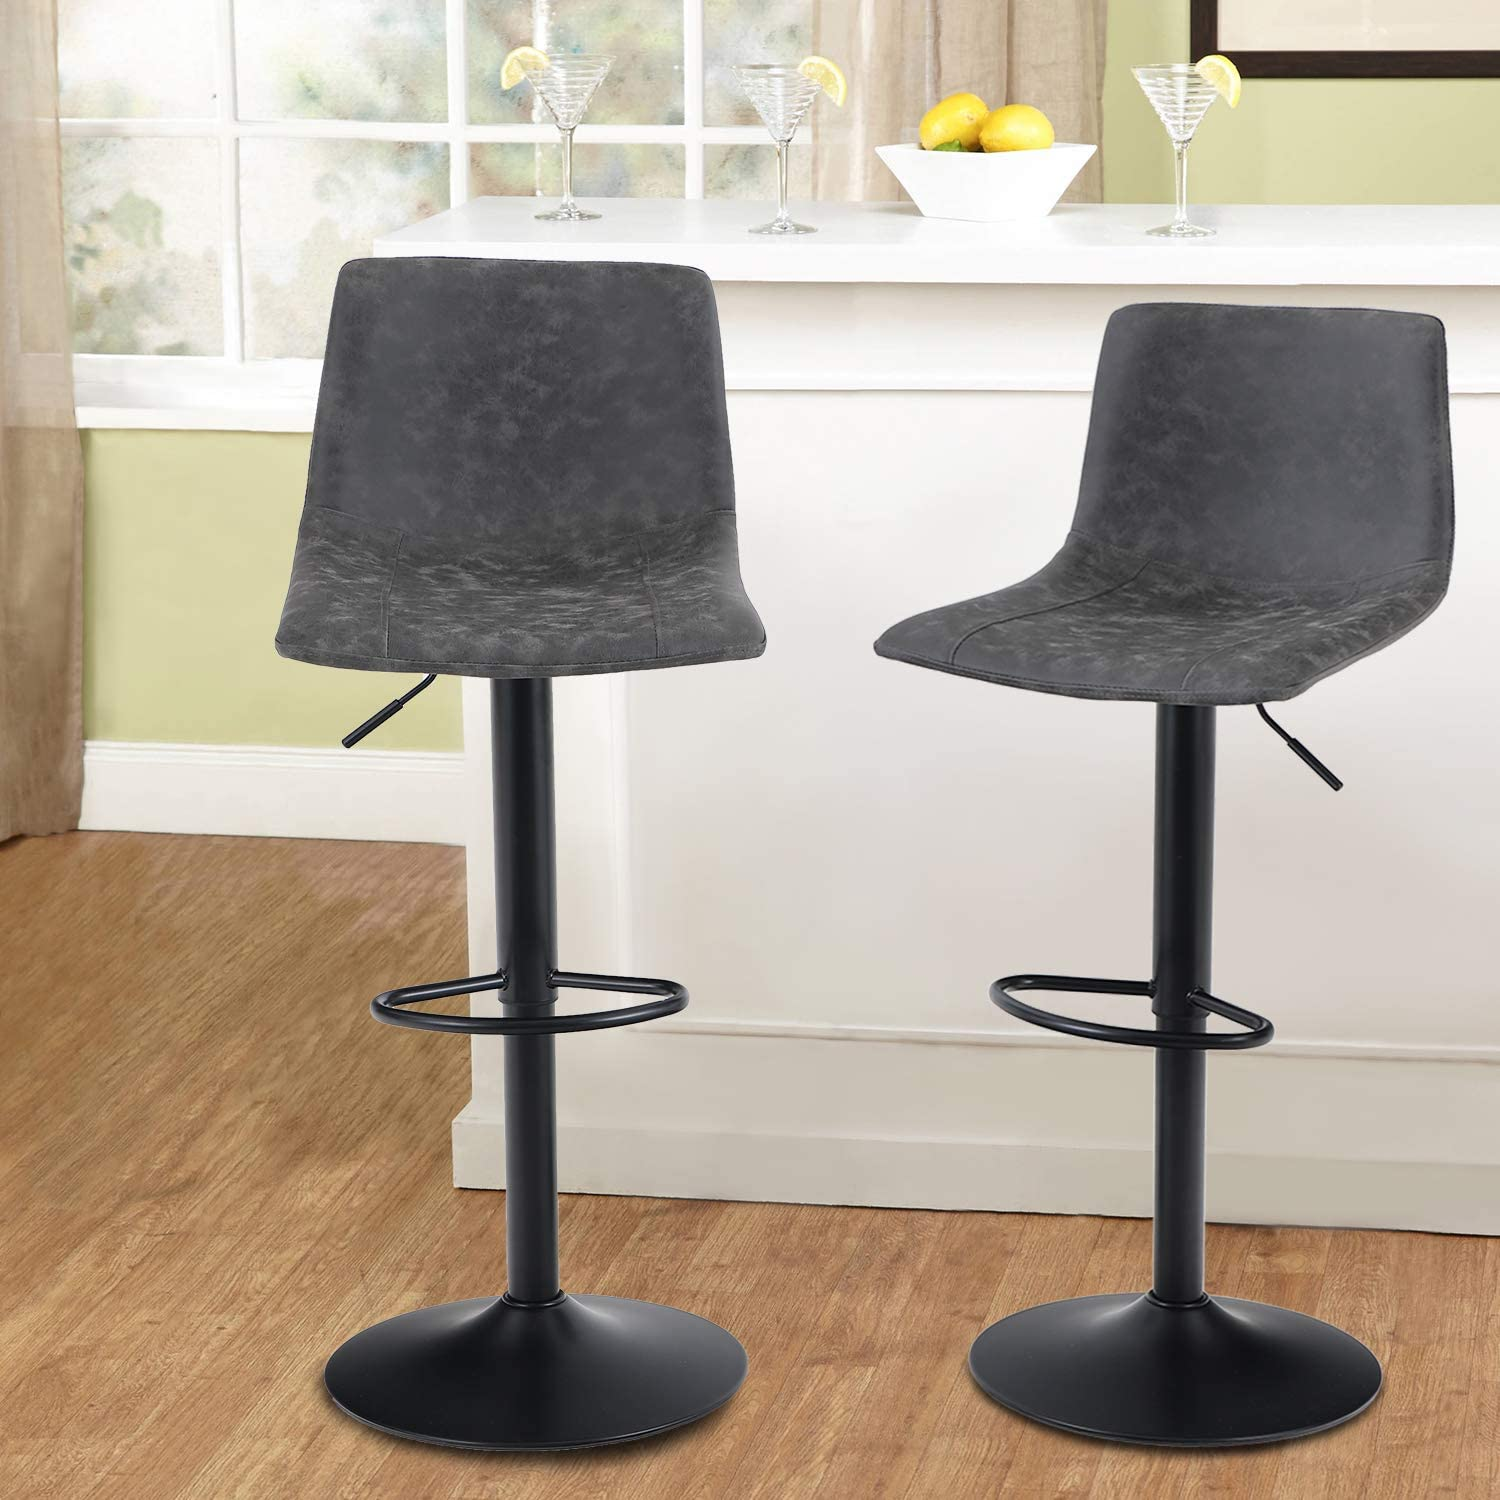 MAISON ARTS Swivel Bar Stools Set of 2 for Kitchen Counter Adjustable Counter Height Bar Chairs with Back Tall Barstools PU Leather Kitchen Island Stools, 300 LBS Bear Capacity, Grey: Kitchen & Dining